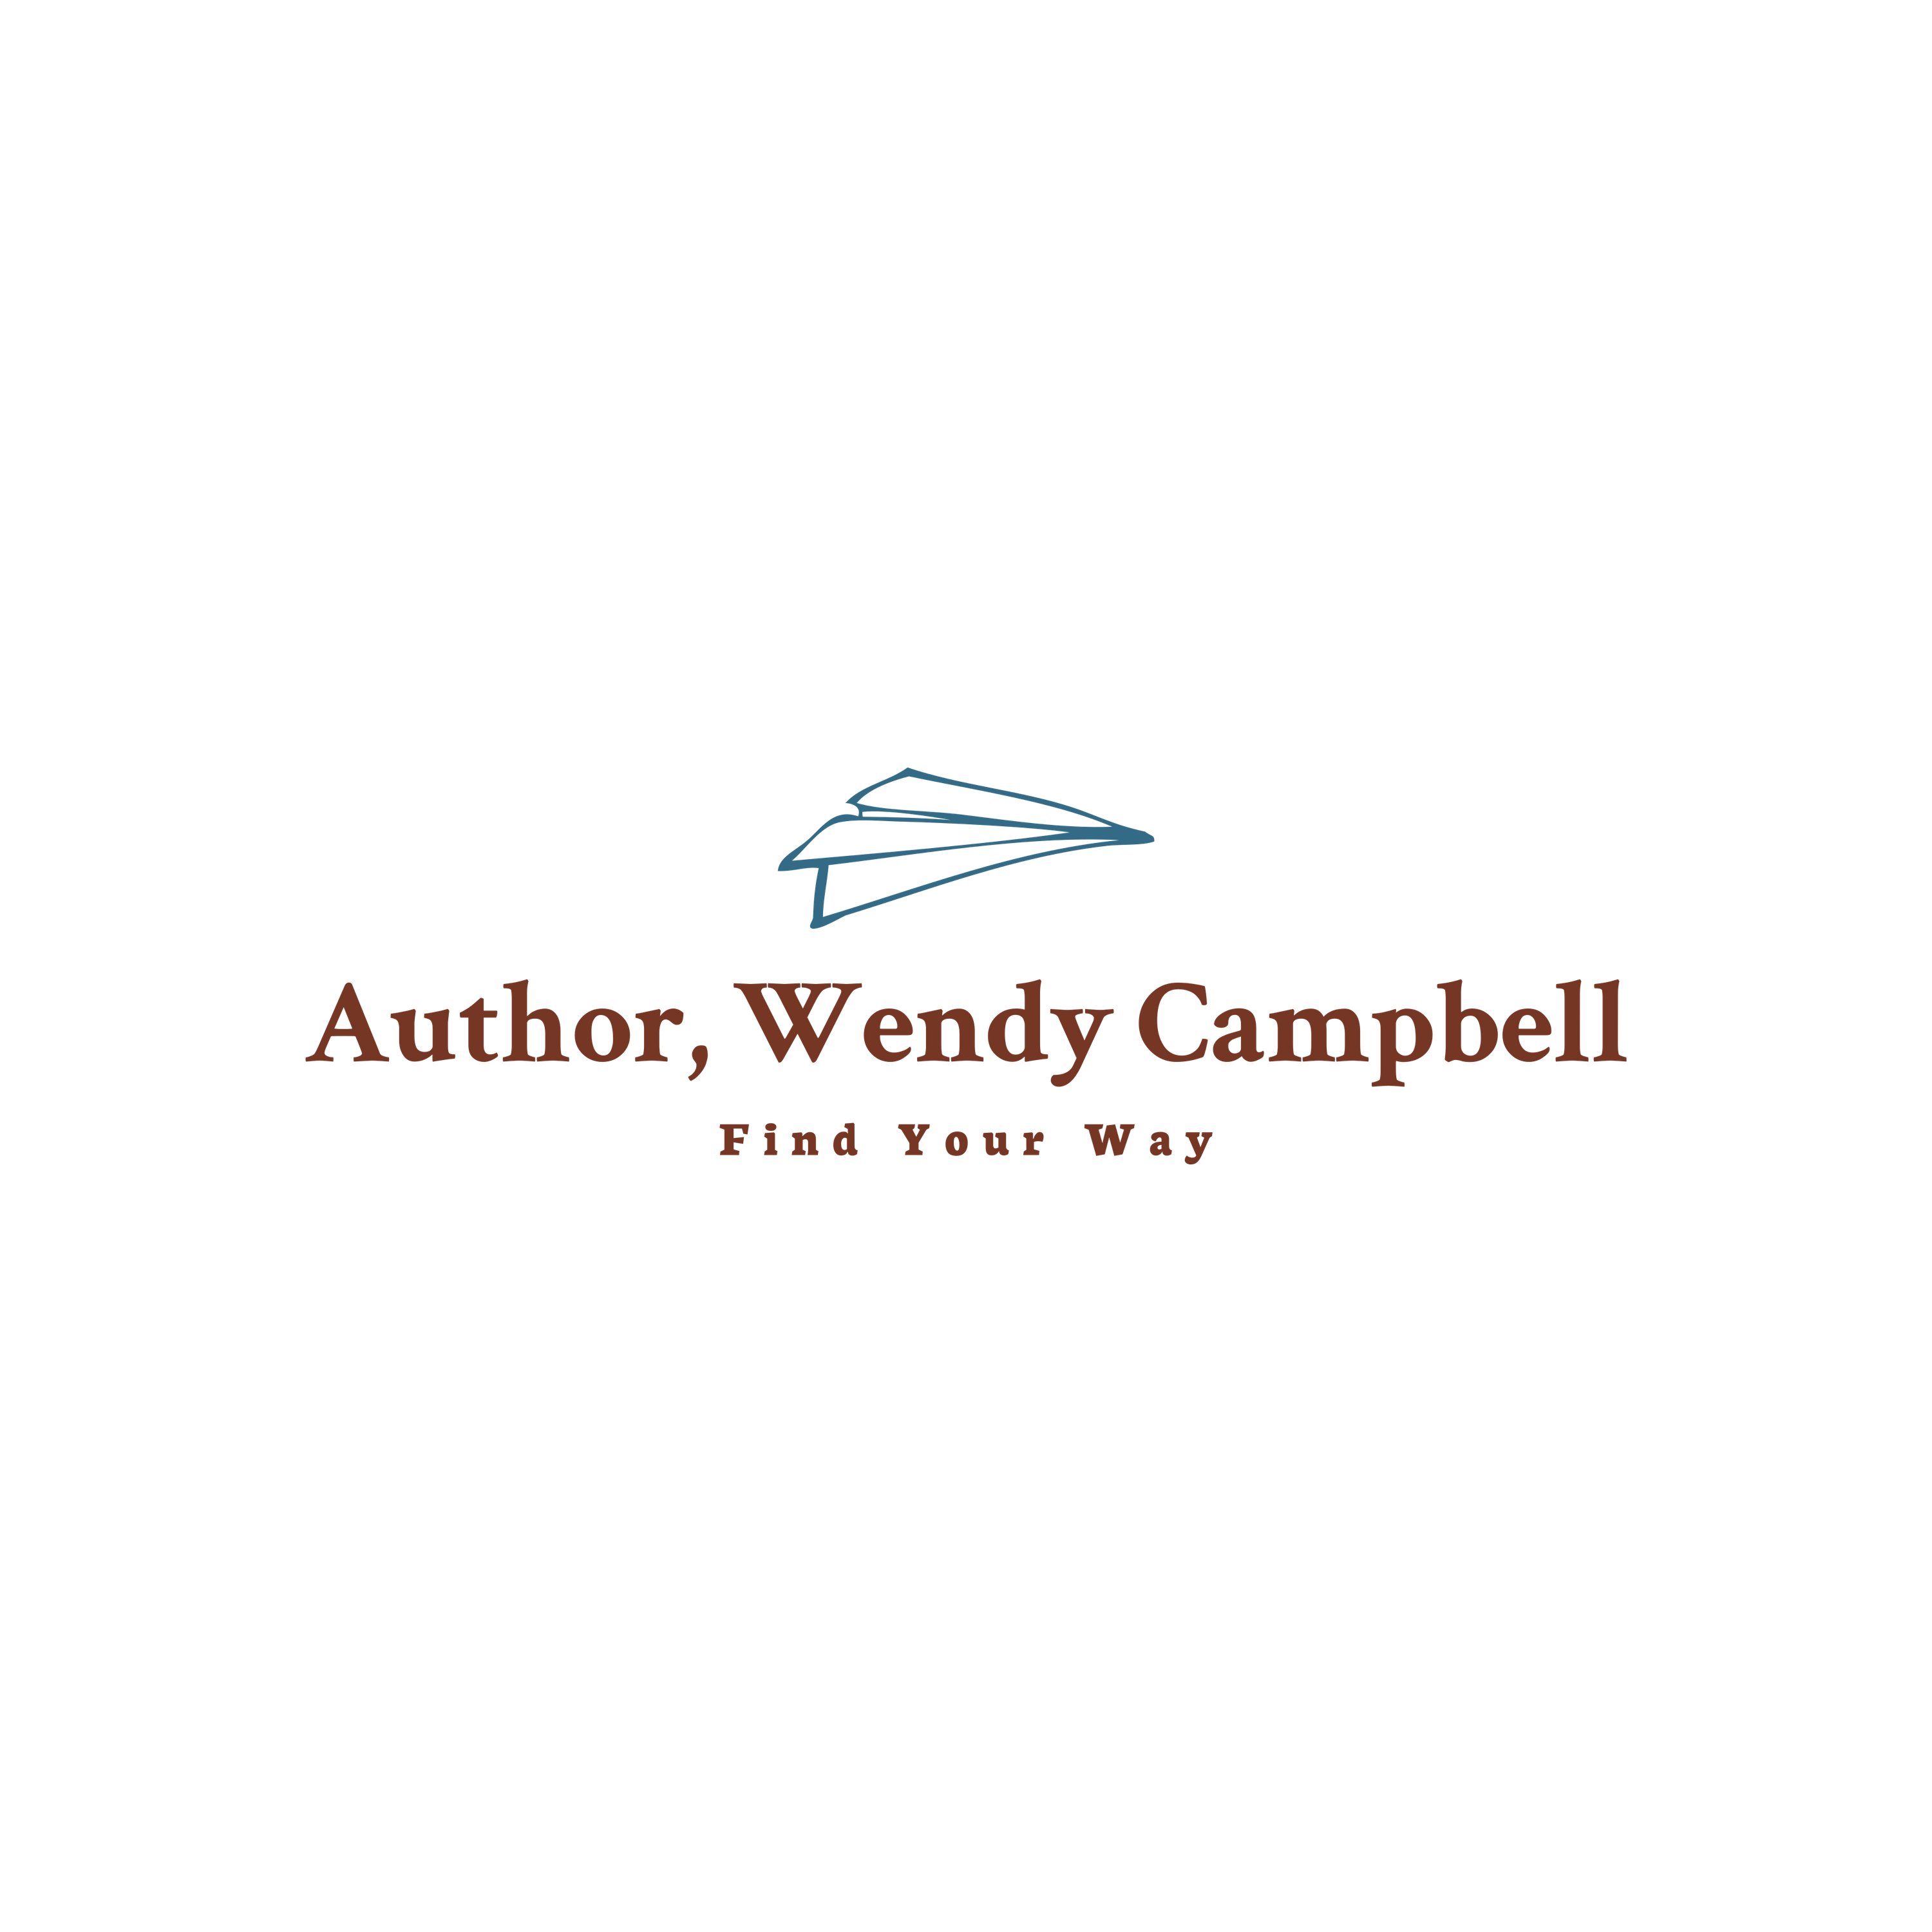 Author, Wendy Campbell